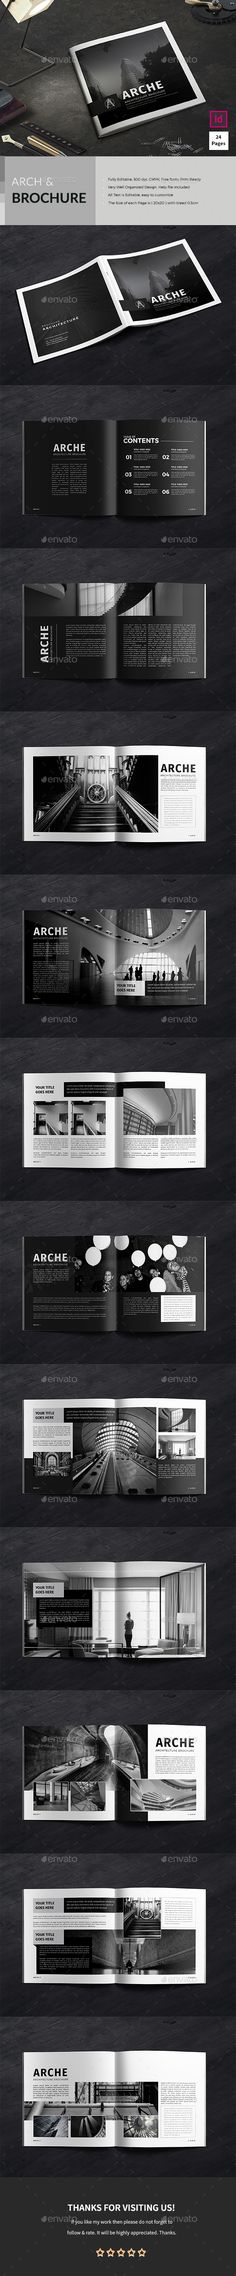 Architecture Brochure Template InDesign INDD